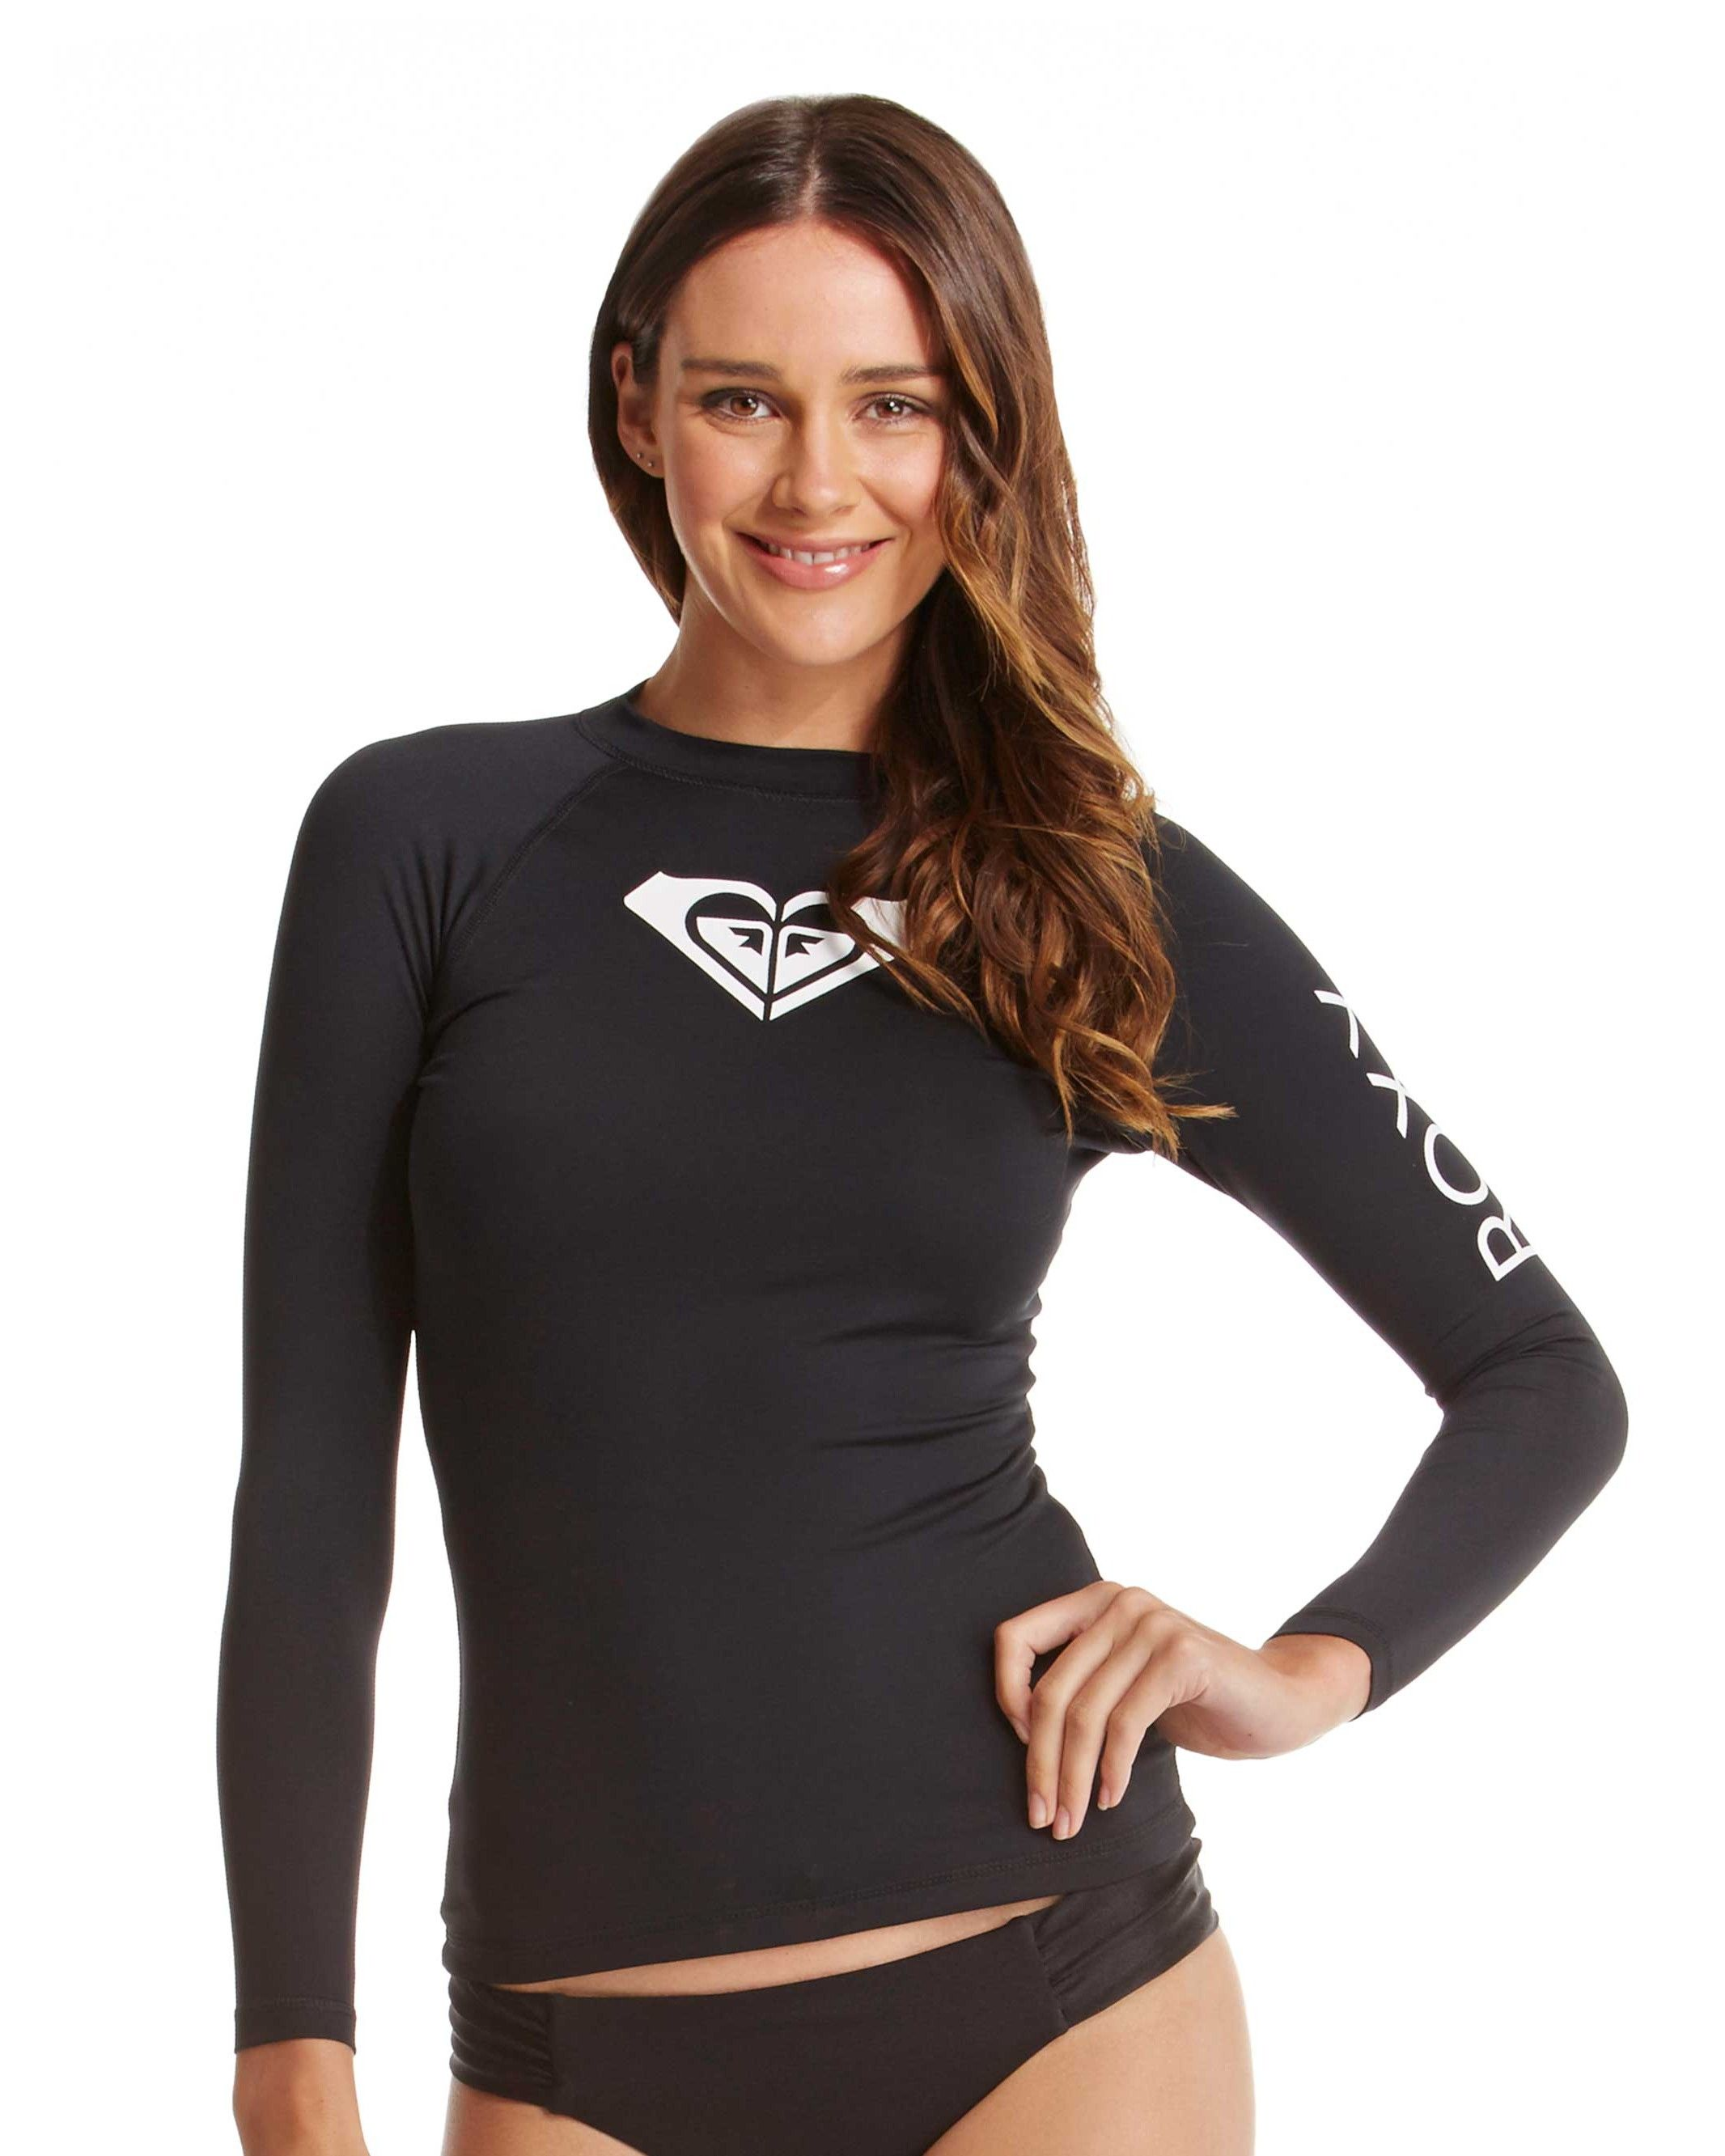 cb2d84a84f NEW-ROXY-Ladies-Whole-Hearted-Long-Sleeve-Rash-Vest-Womens-Rash-Guard -Rashsuit